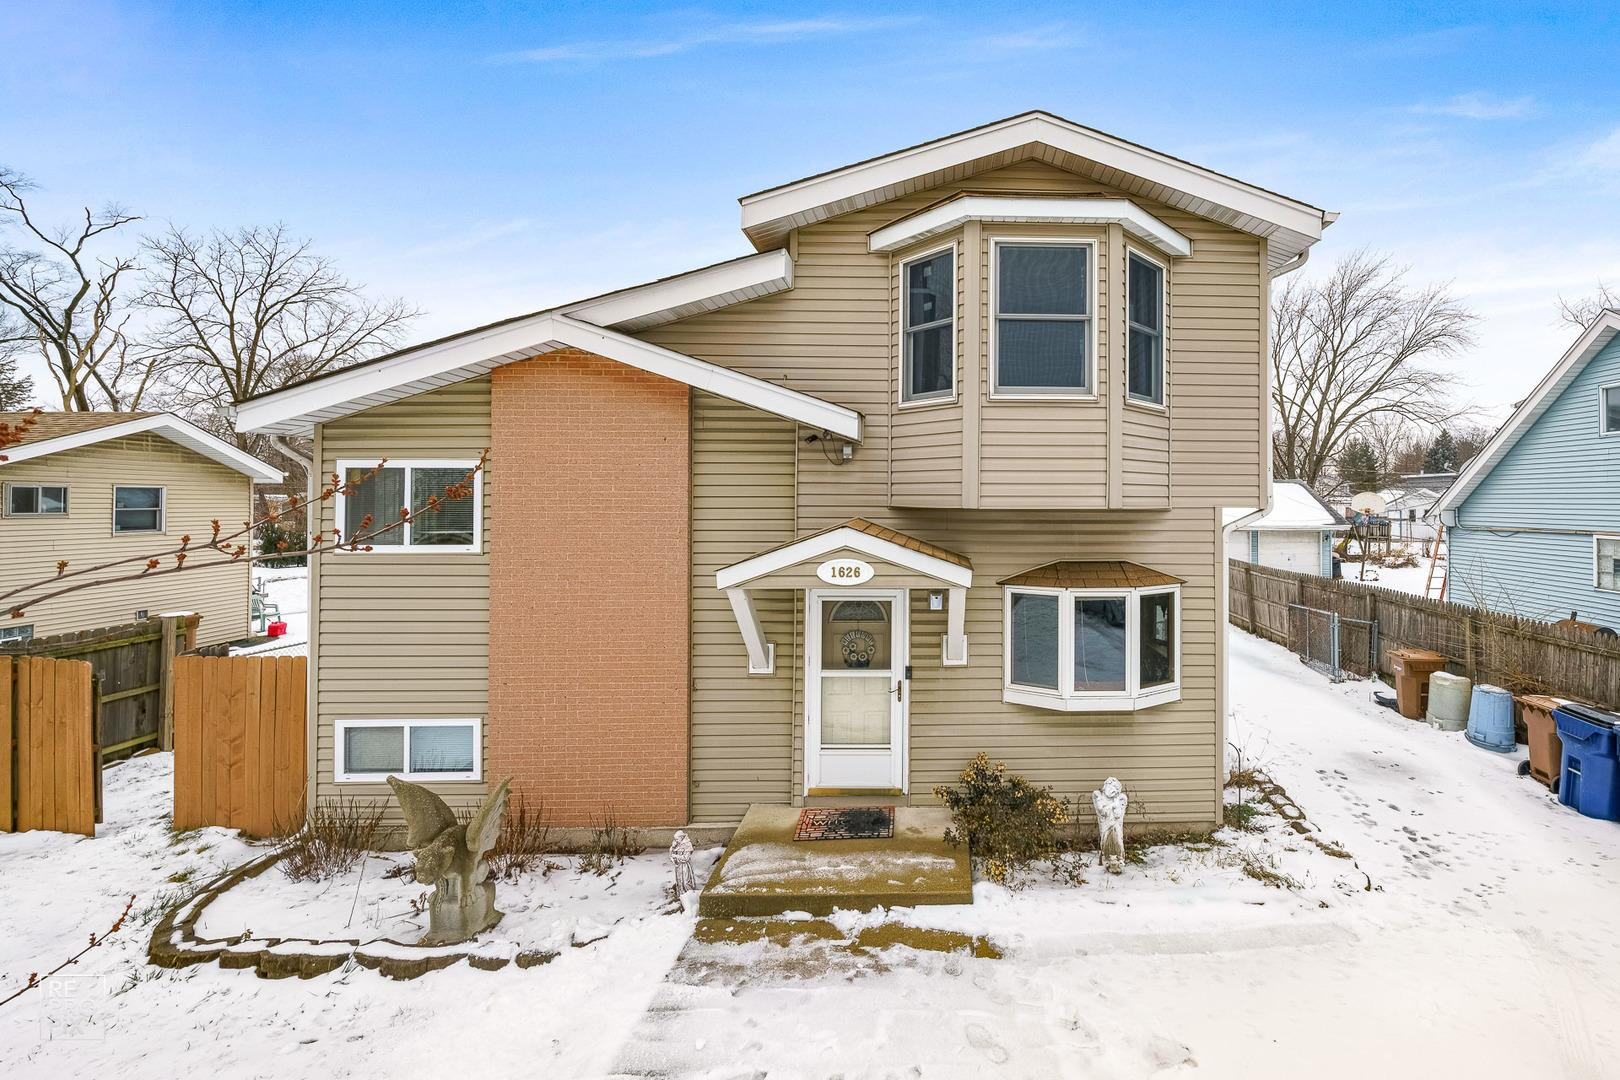 1626 Glen Ellyn Road, Glendale Heights, IL 60139 - #: 10967721